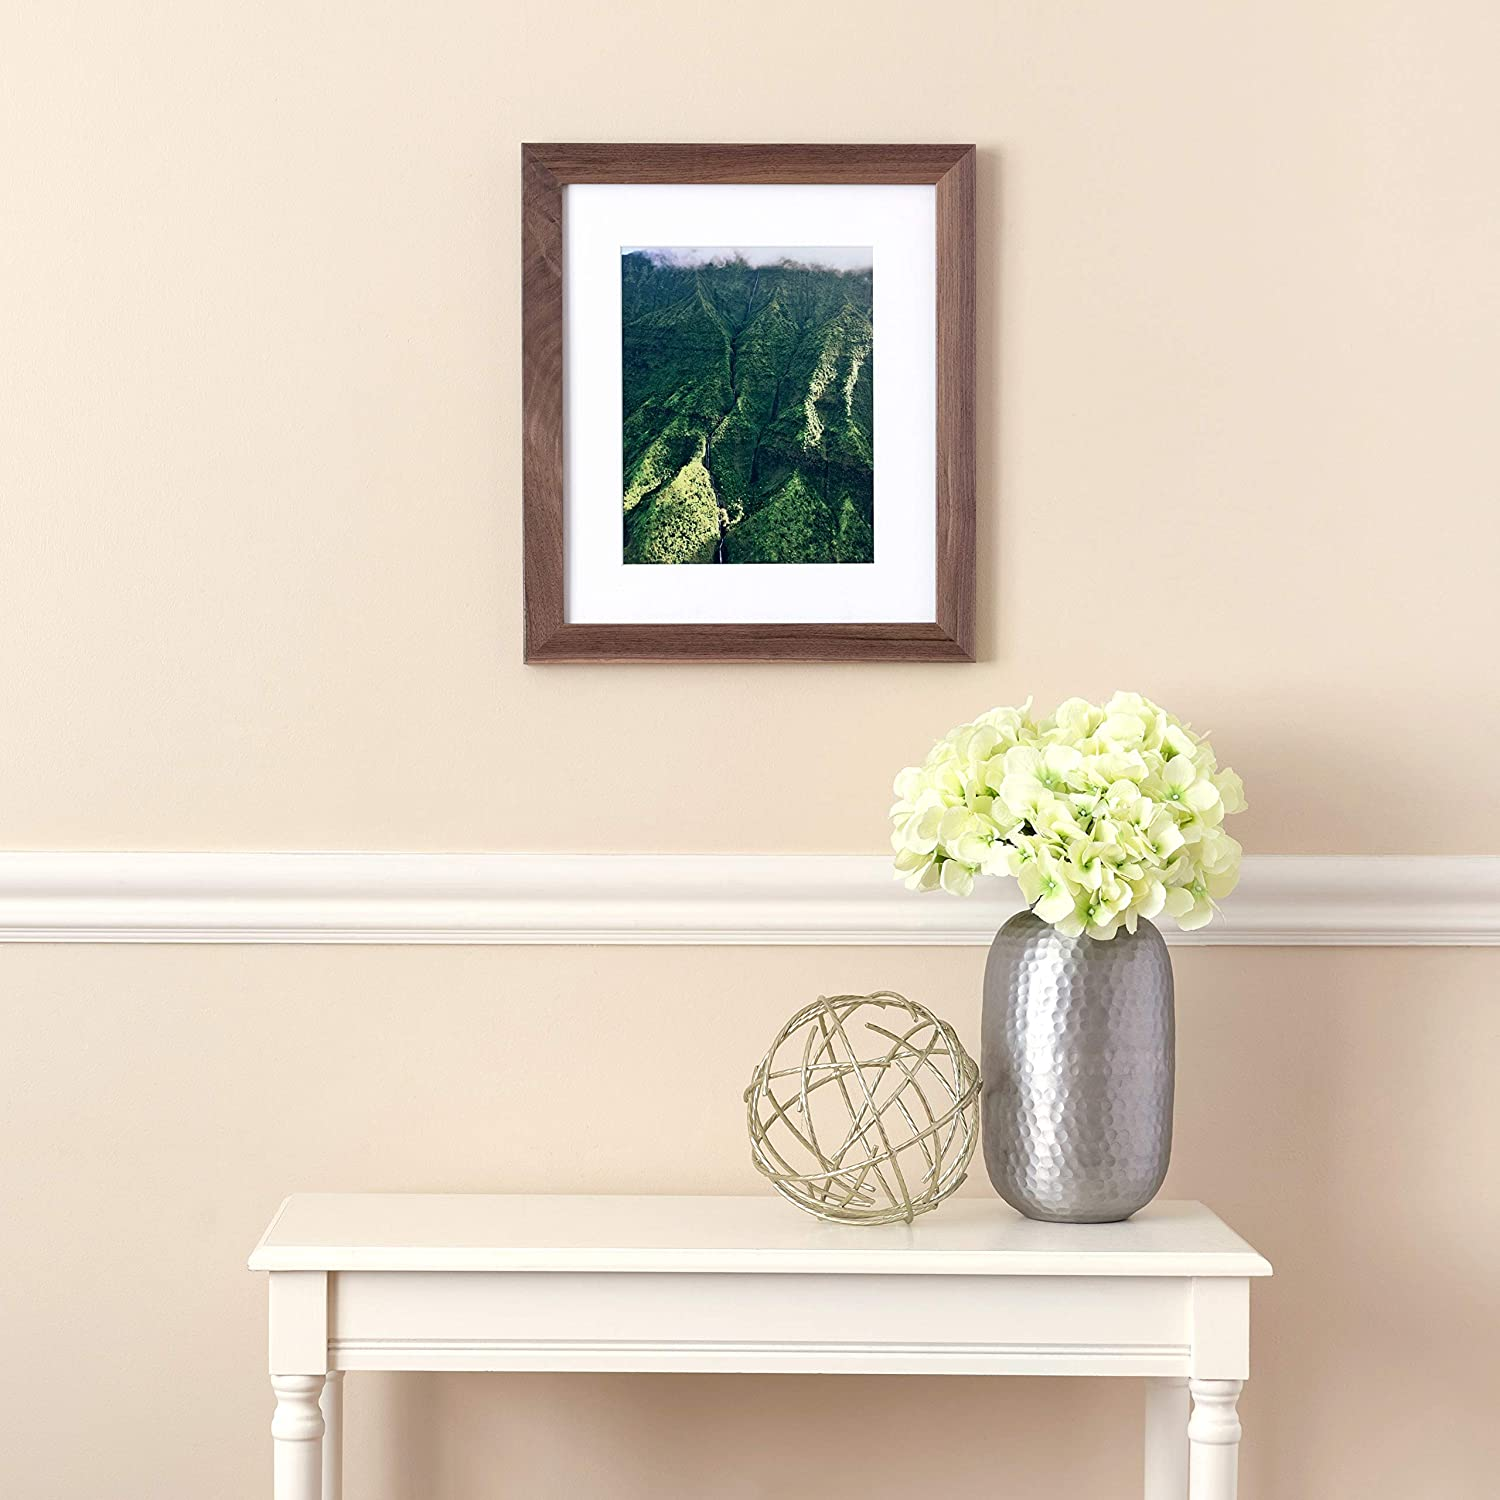 2WOM0066-81791-YWHT-18x25 ArtToFrames 18x25 inch Off White Stain on Beech Wood Picture Frame